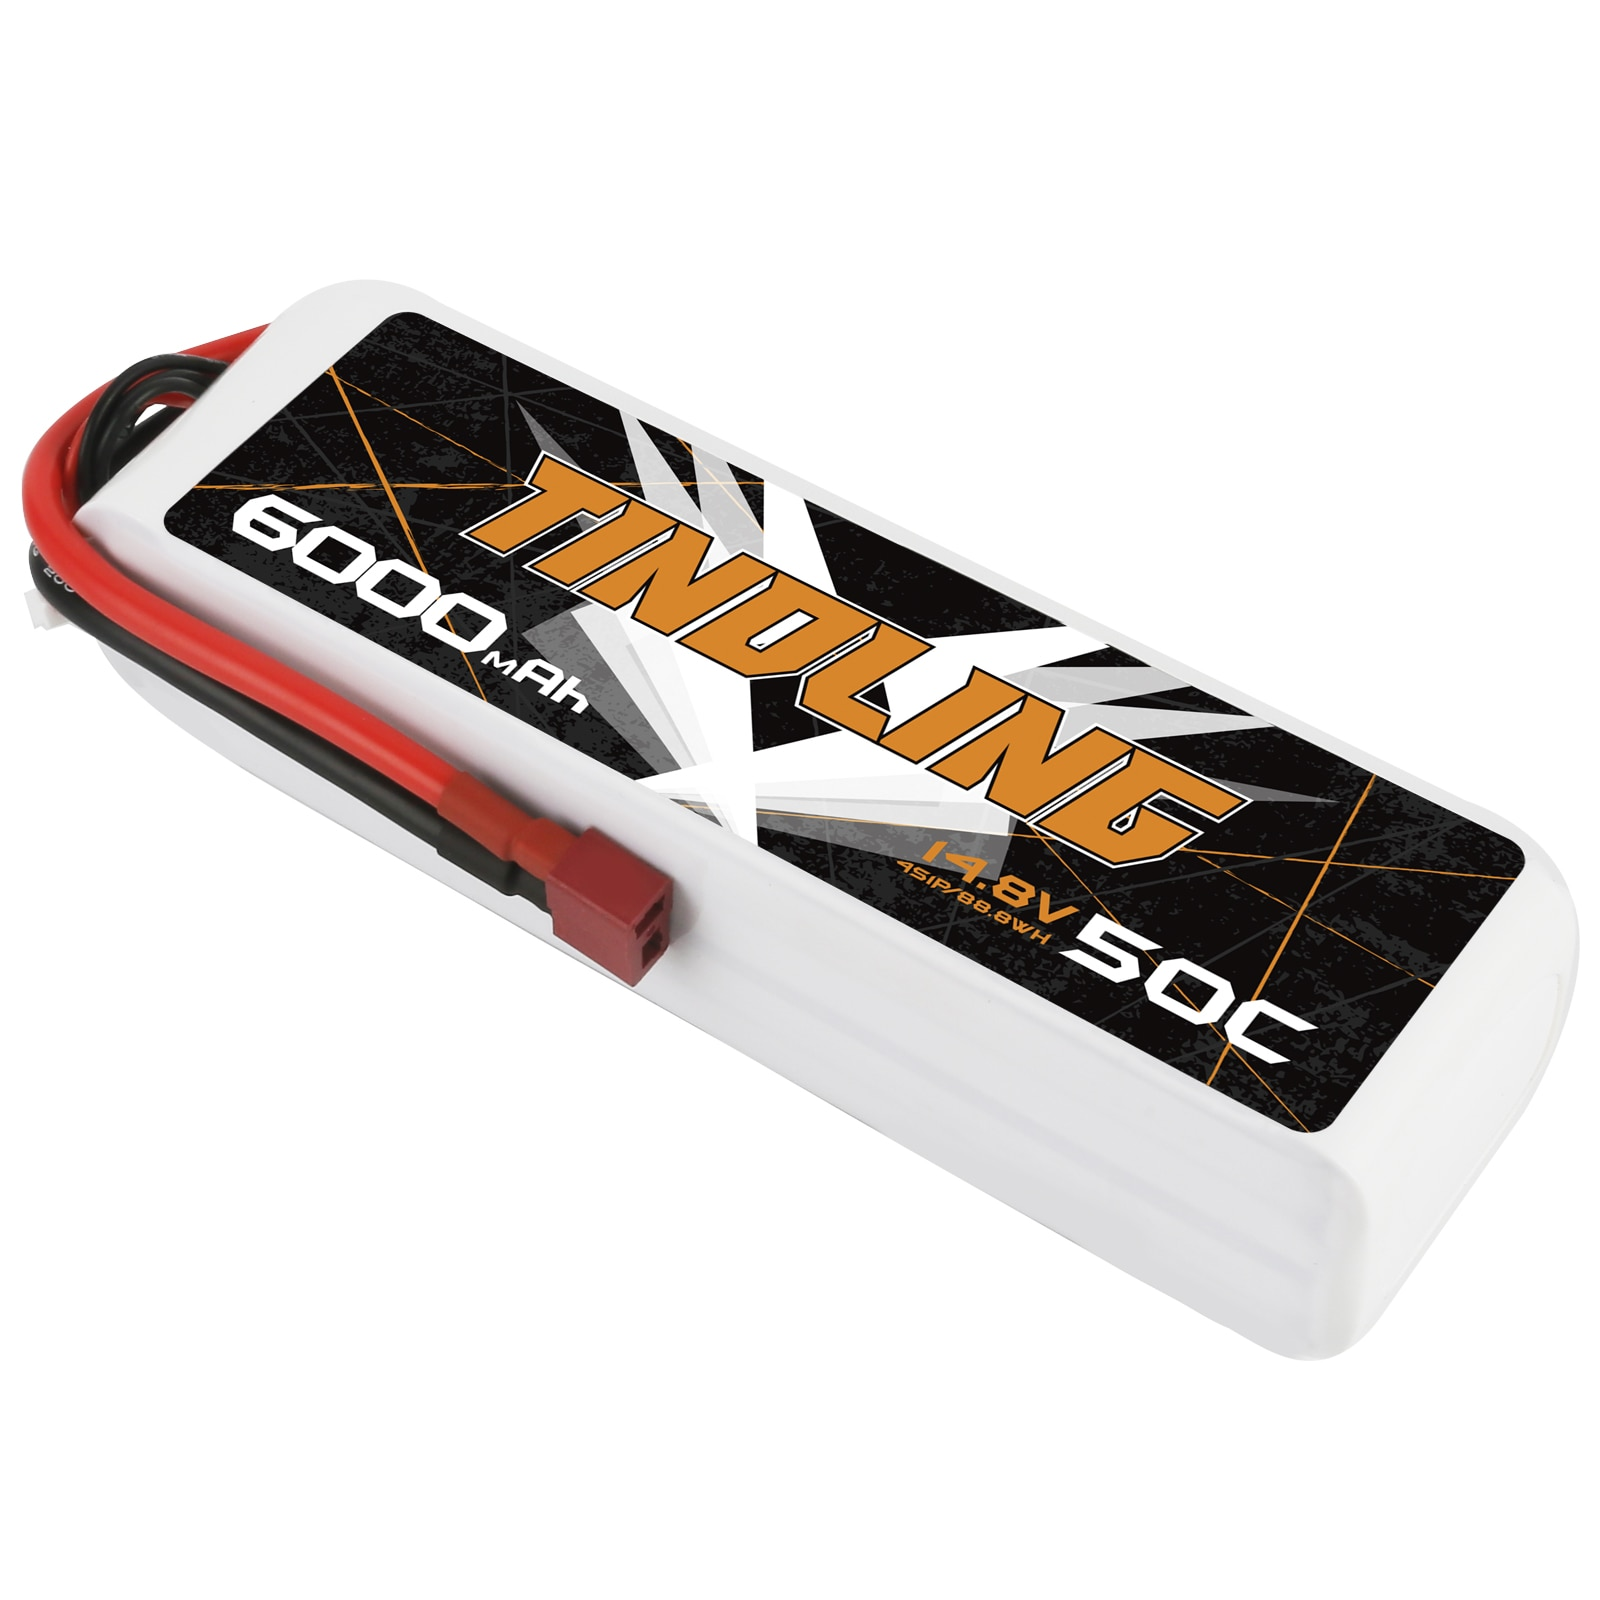 TINDLING 6000mAh 50C 4S 14.8V Lipo Battery with T Plug RC Quadcopter Drone Boat RC Boat toys and model car accessories enlarge